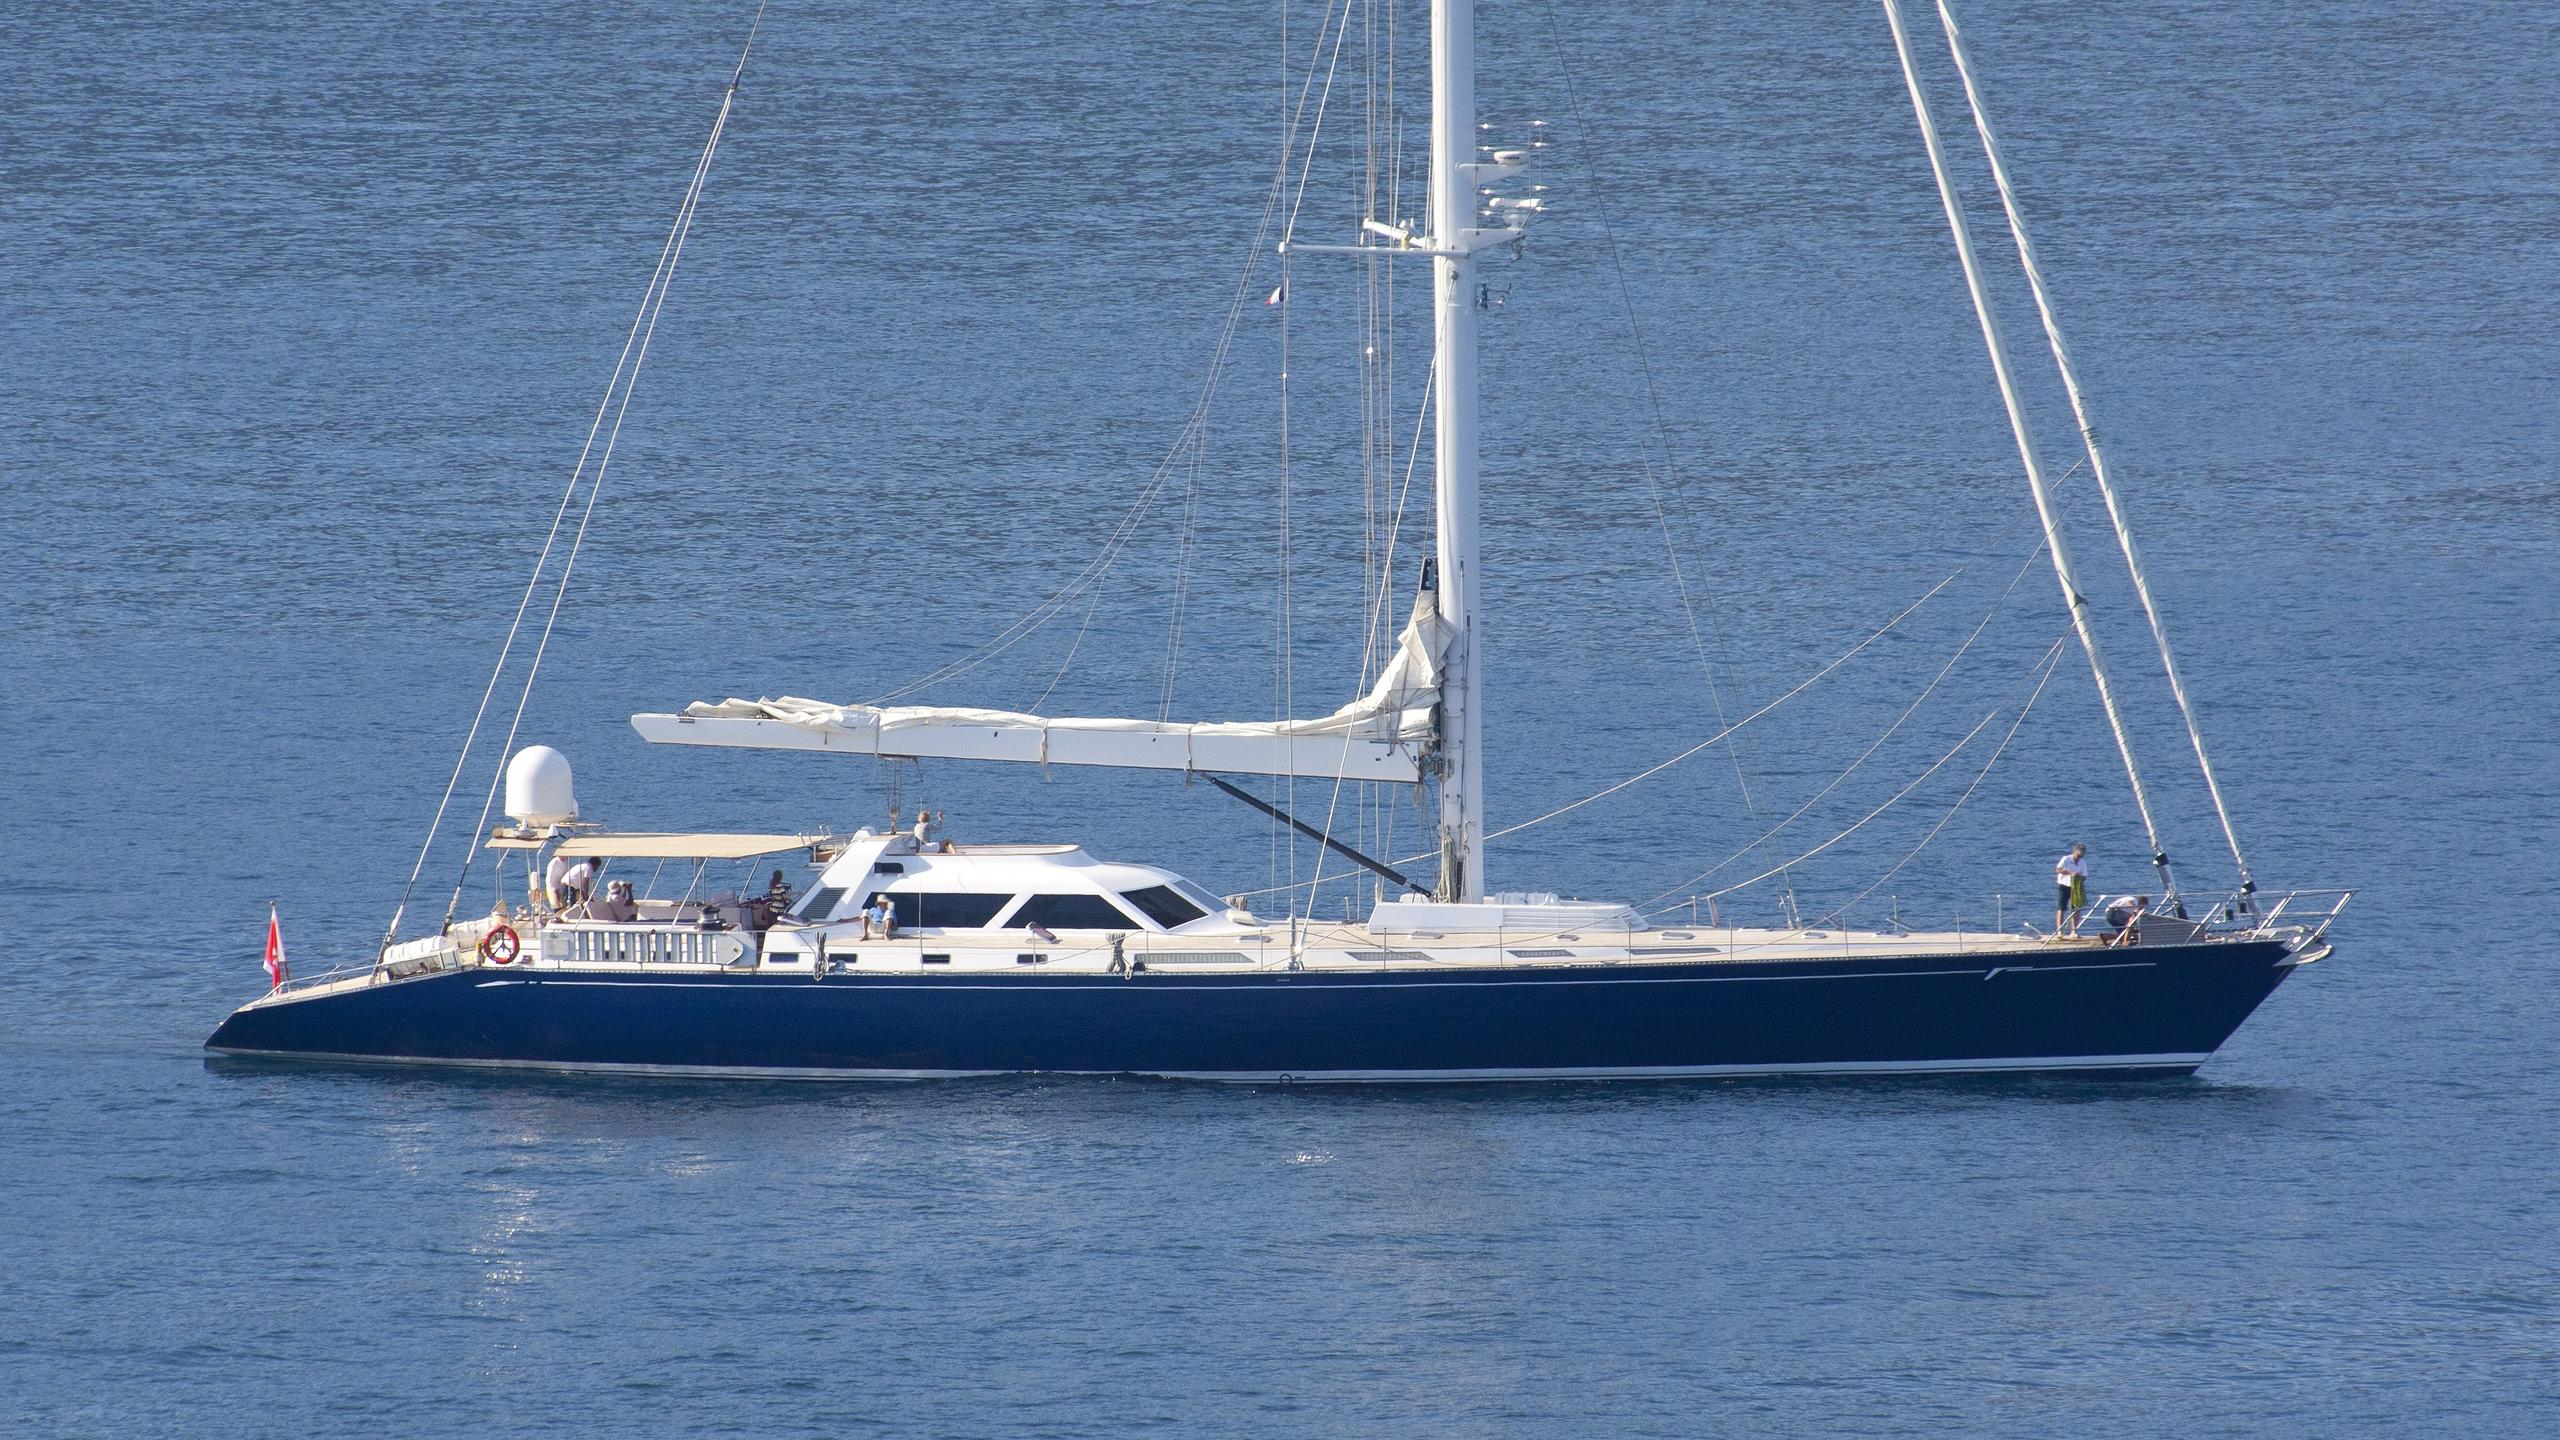 mirabella latitude sailing yacht concorde 40m 1992 profile with hull wrapped